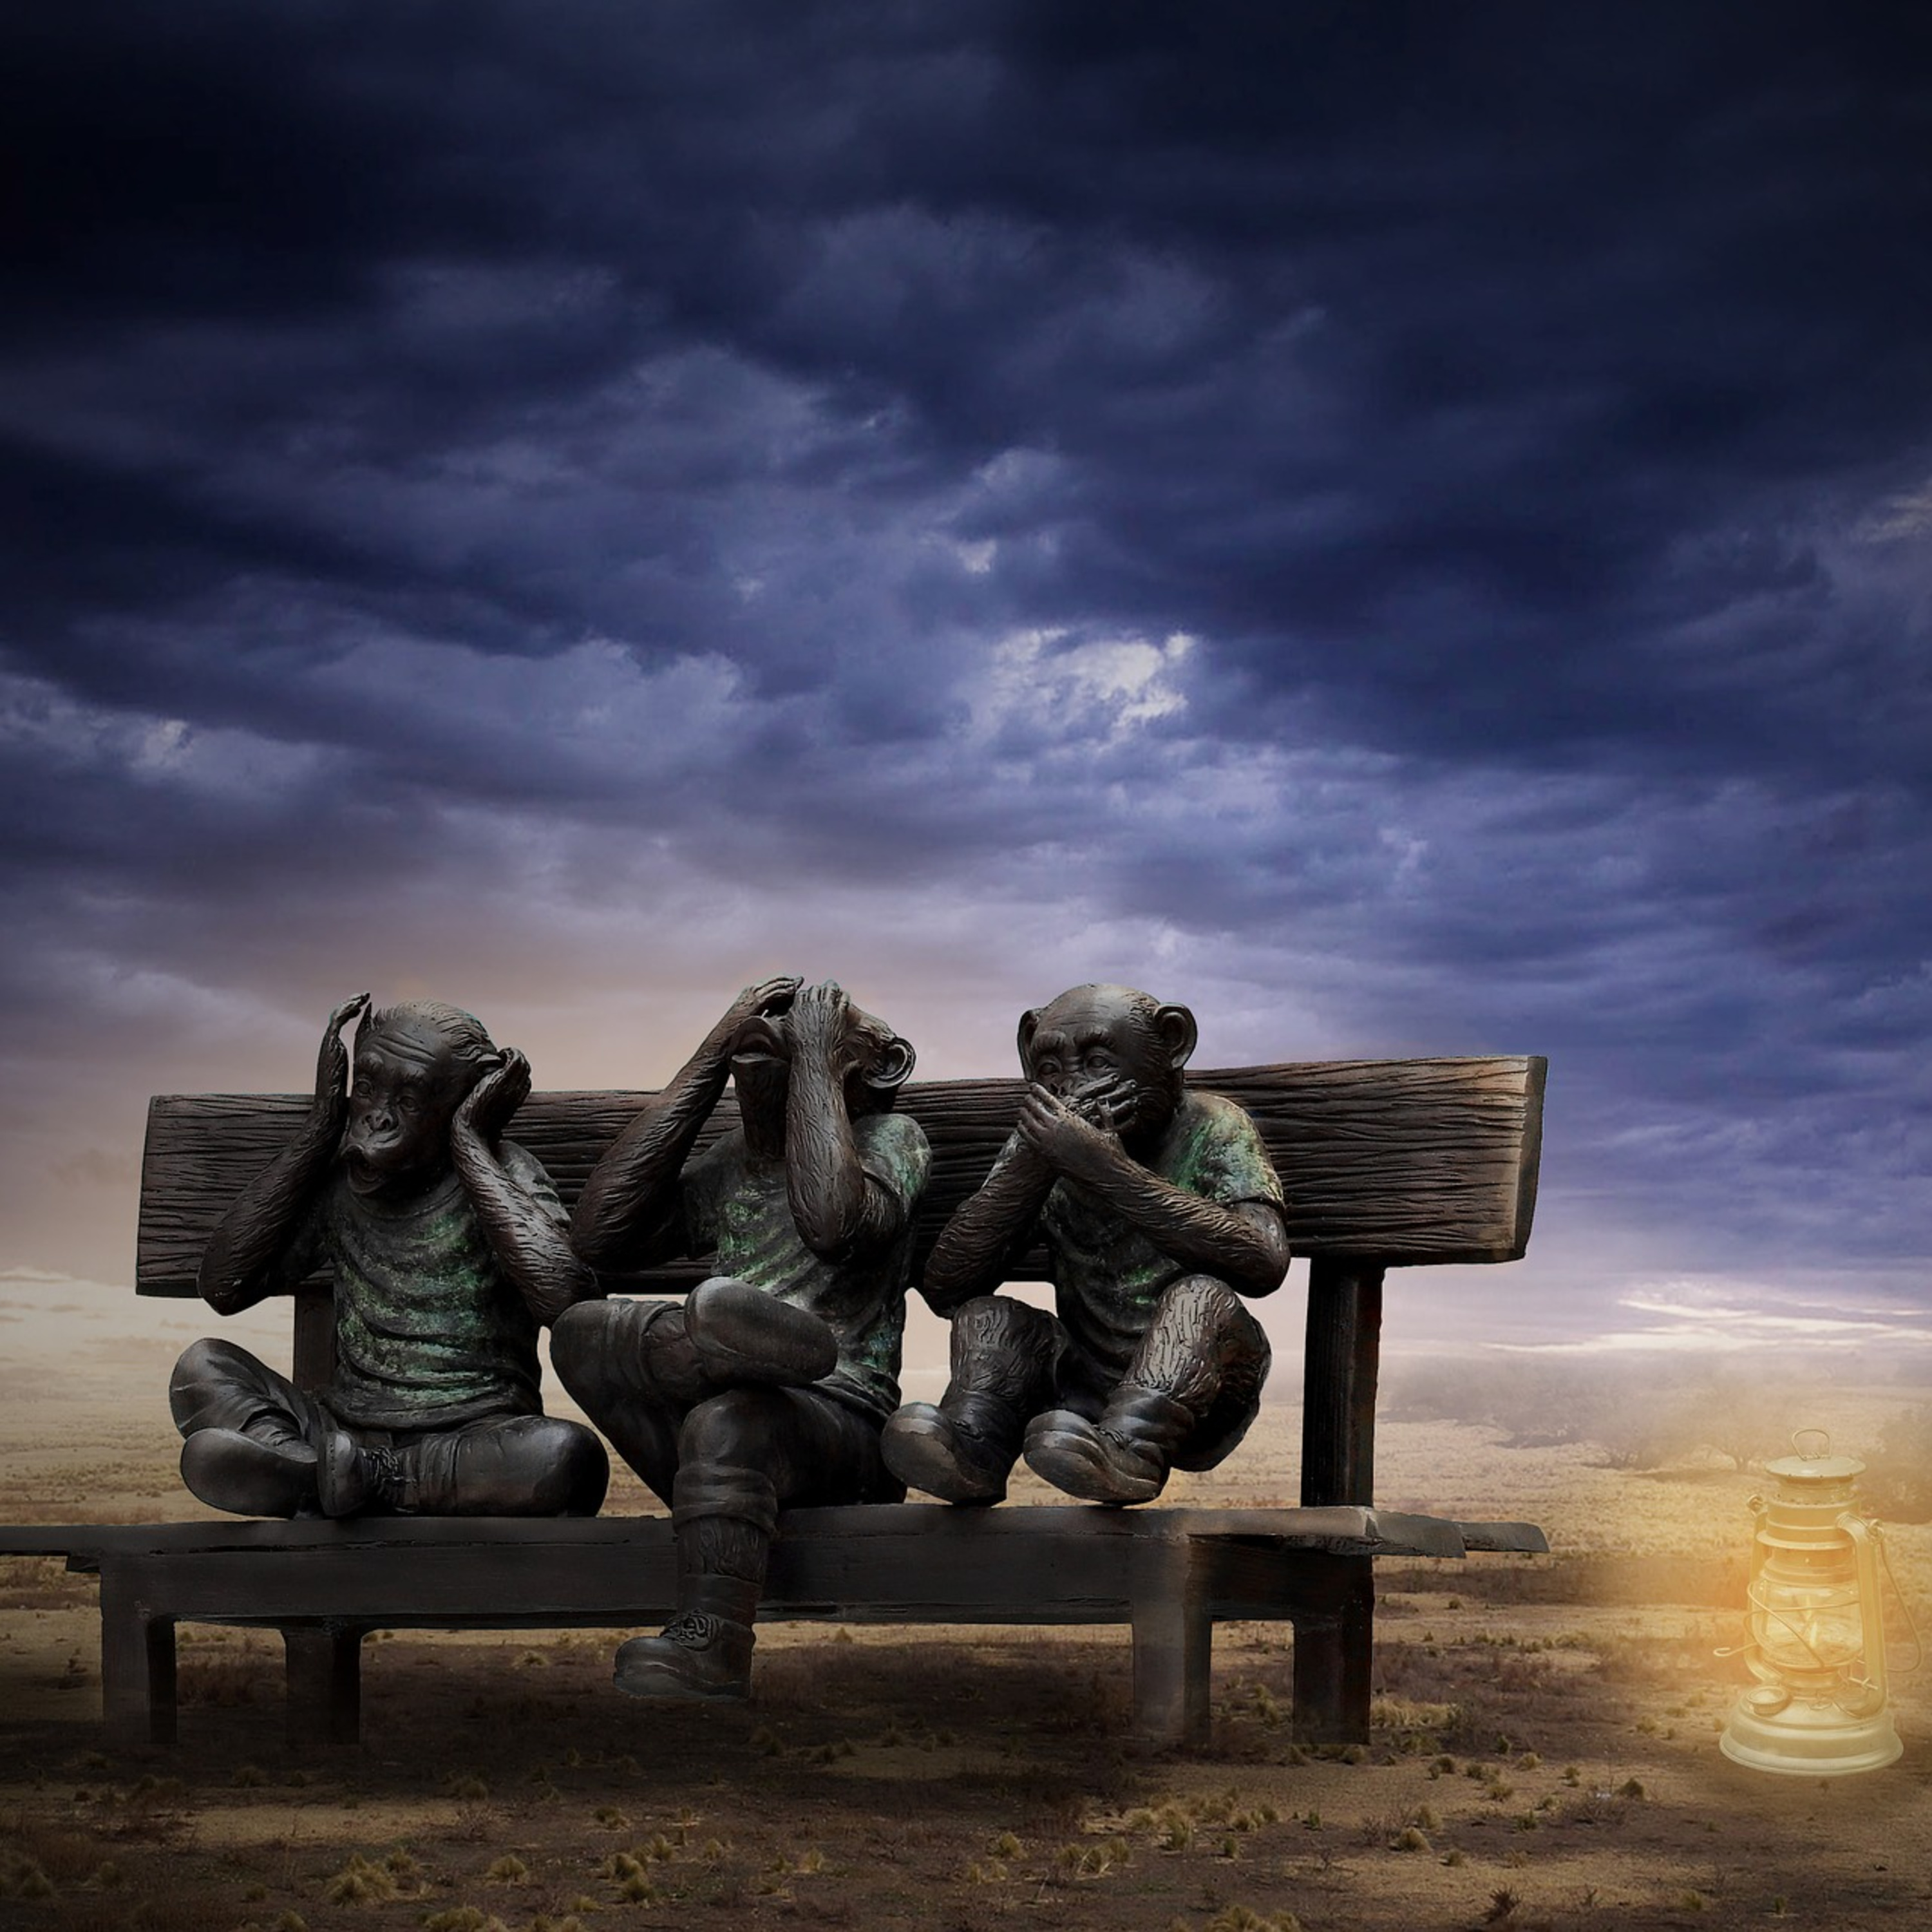 Parental Alienation and The Three Wise Monkeys